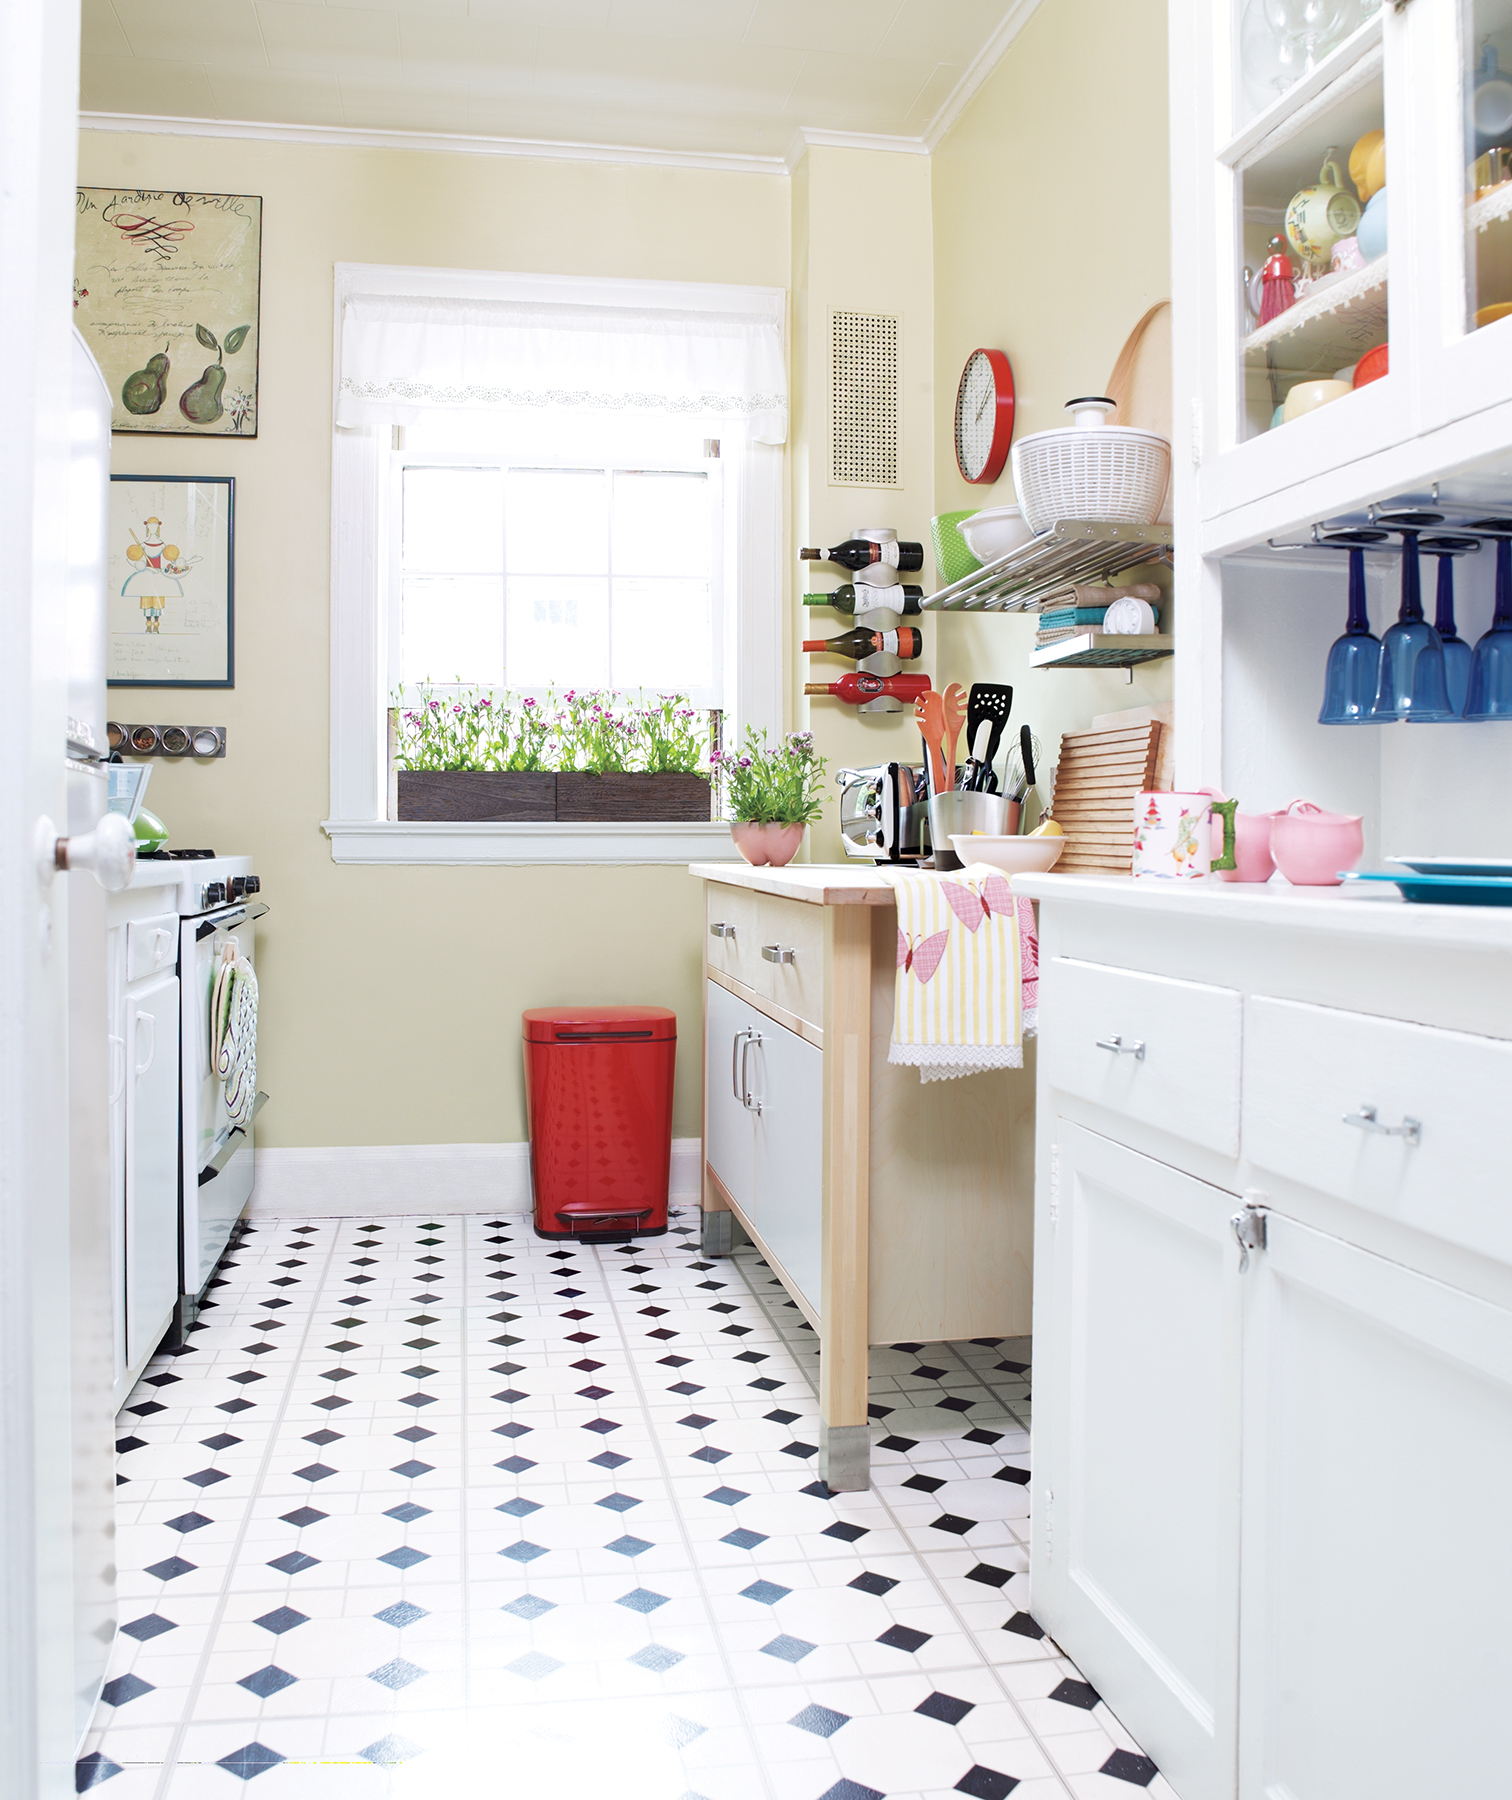 16 Before-and-After Room Makeovers